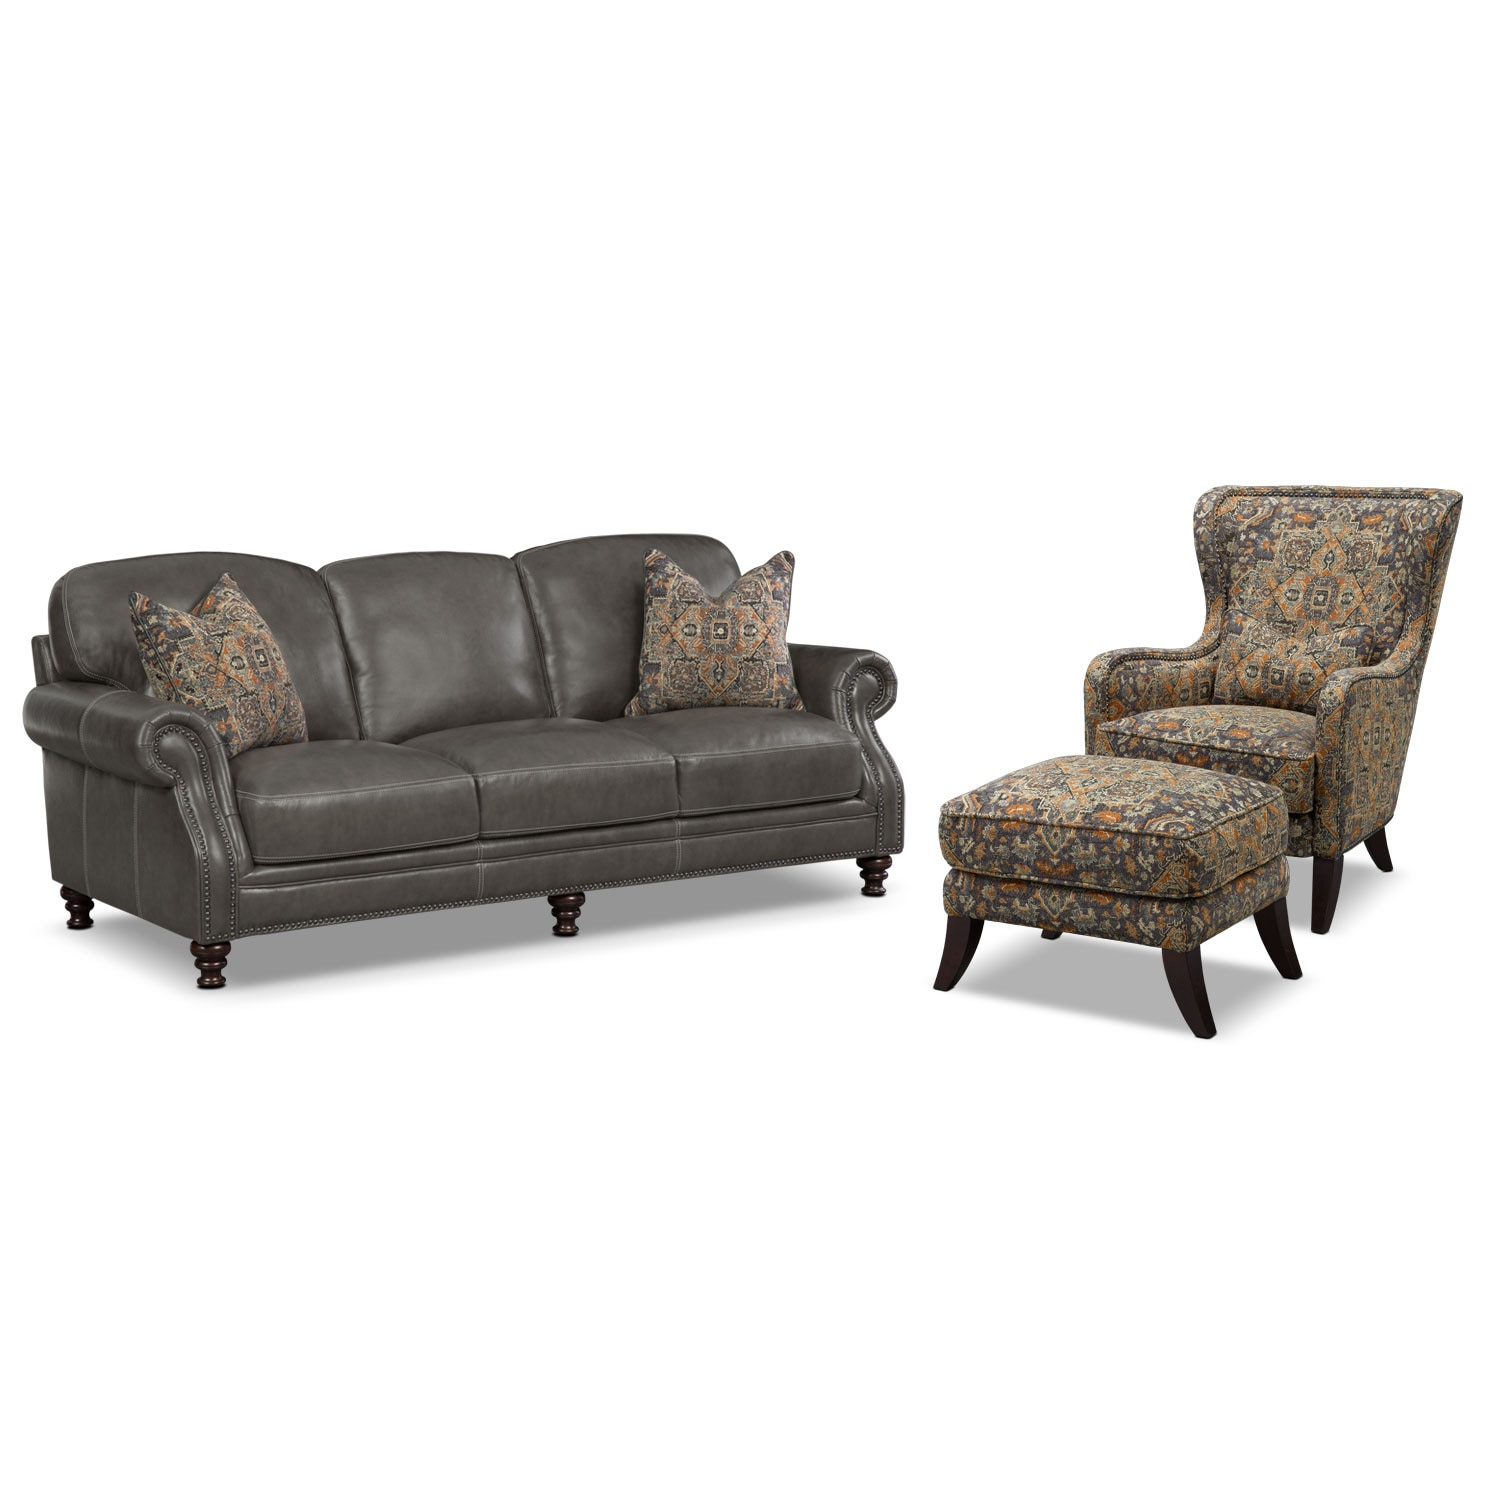 Living Room Furniture - Carrington Charcoal 3 Pc. Living Room w/ Accent Chair and Accent Ottoman